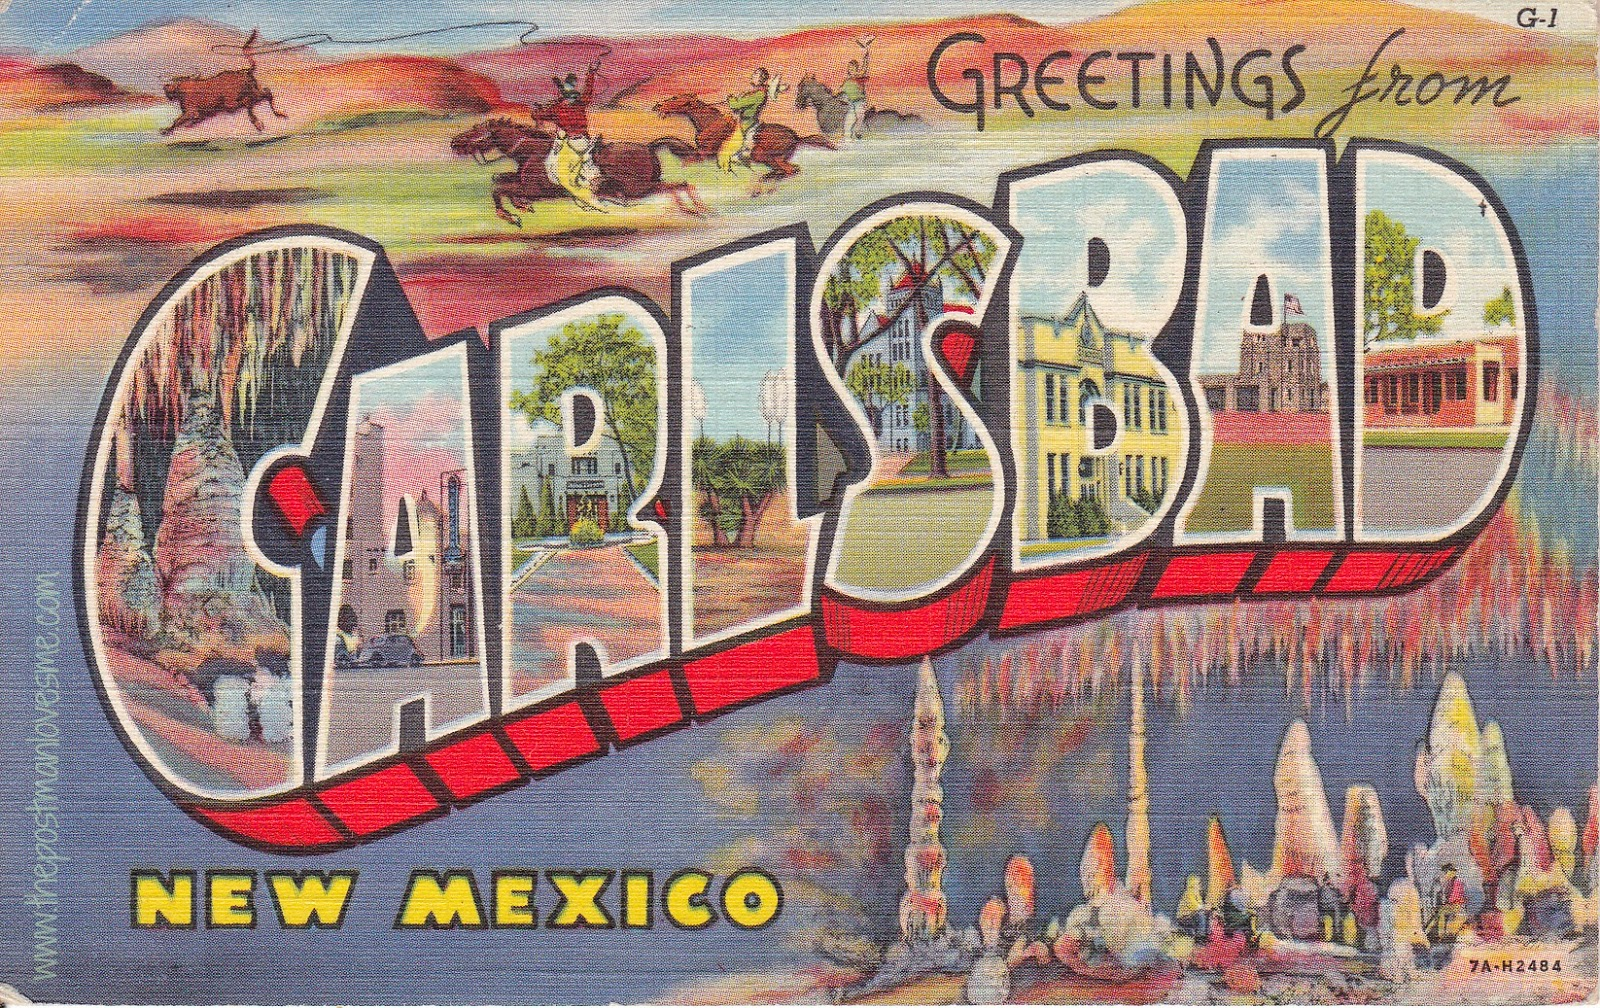 Greetings from Carlsbad, NM Vintage Linen Postcard